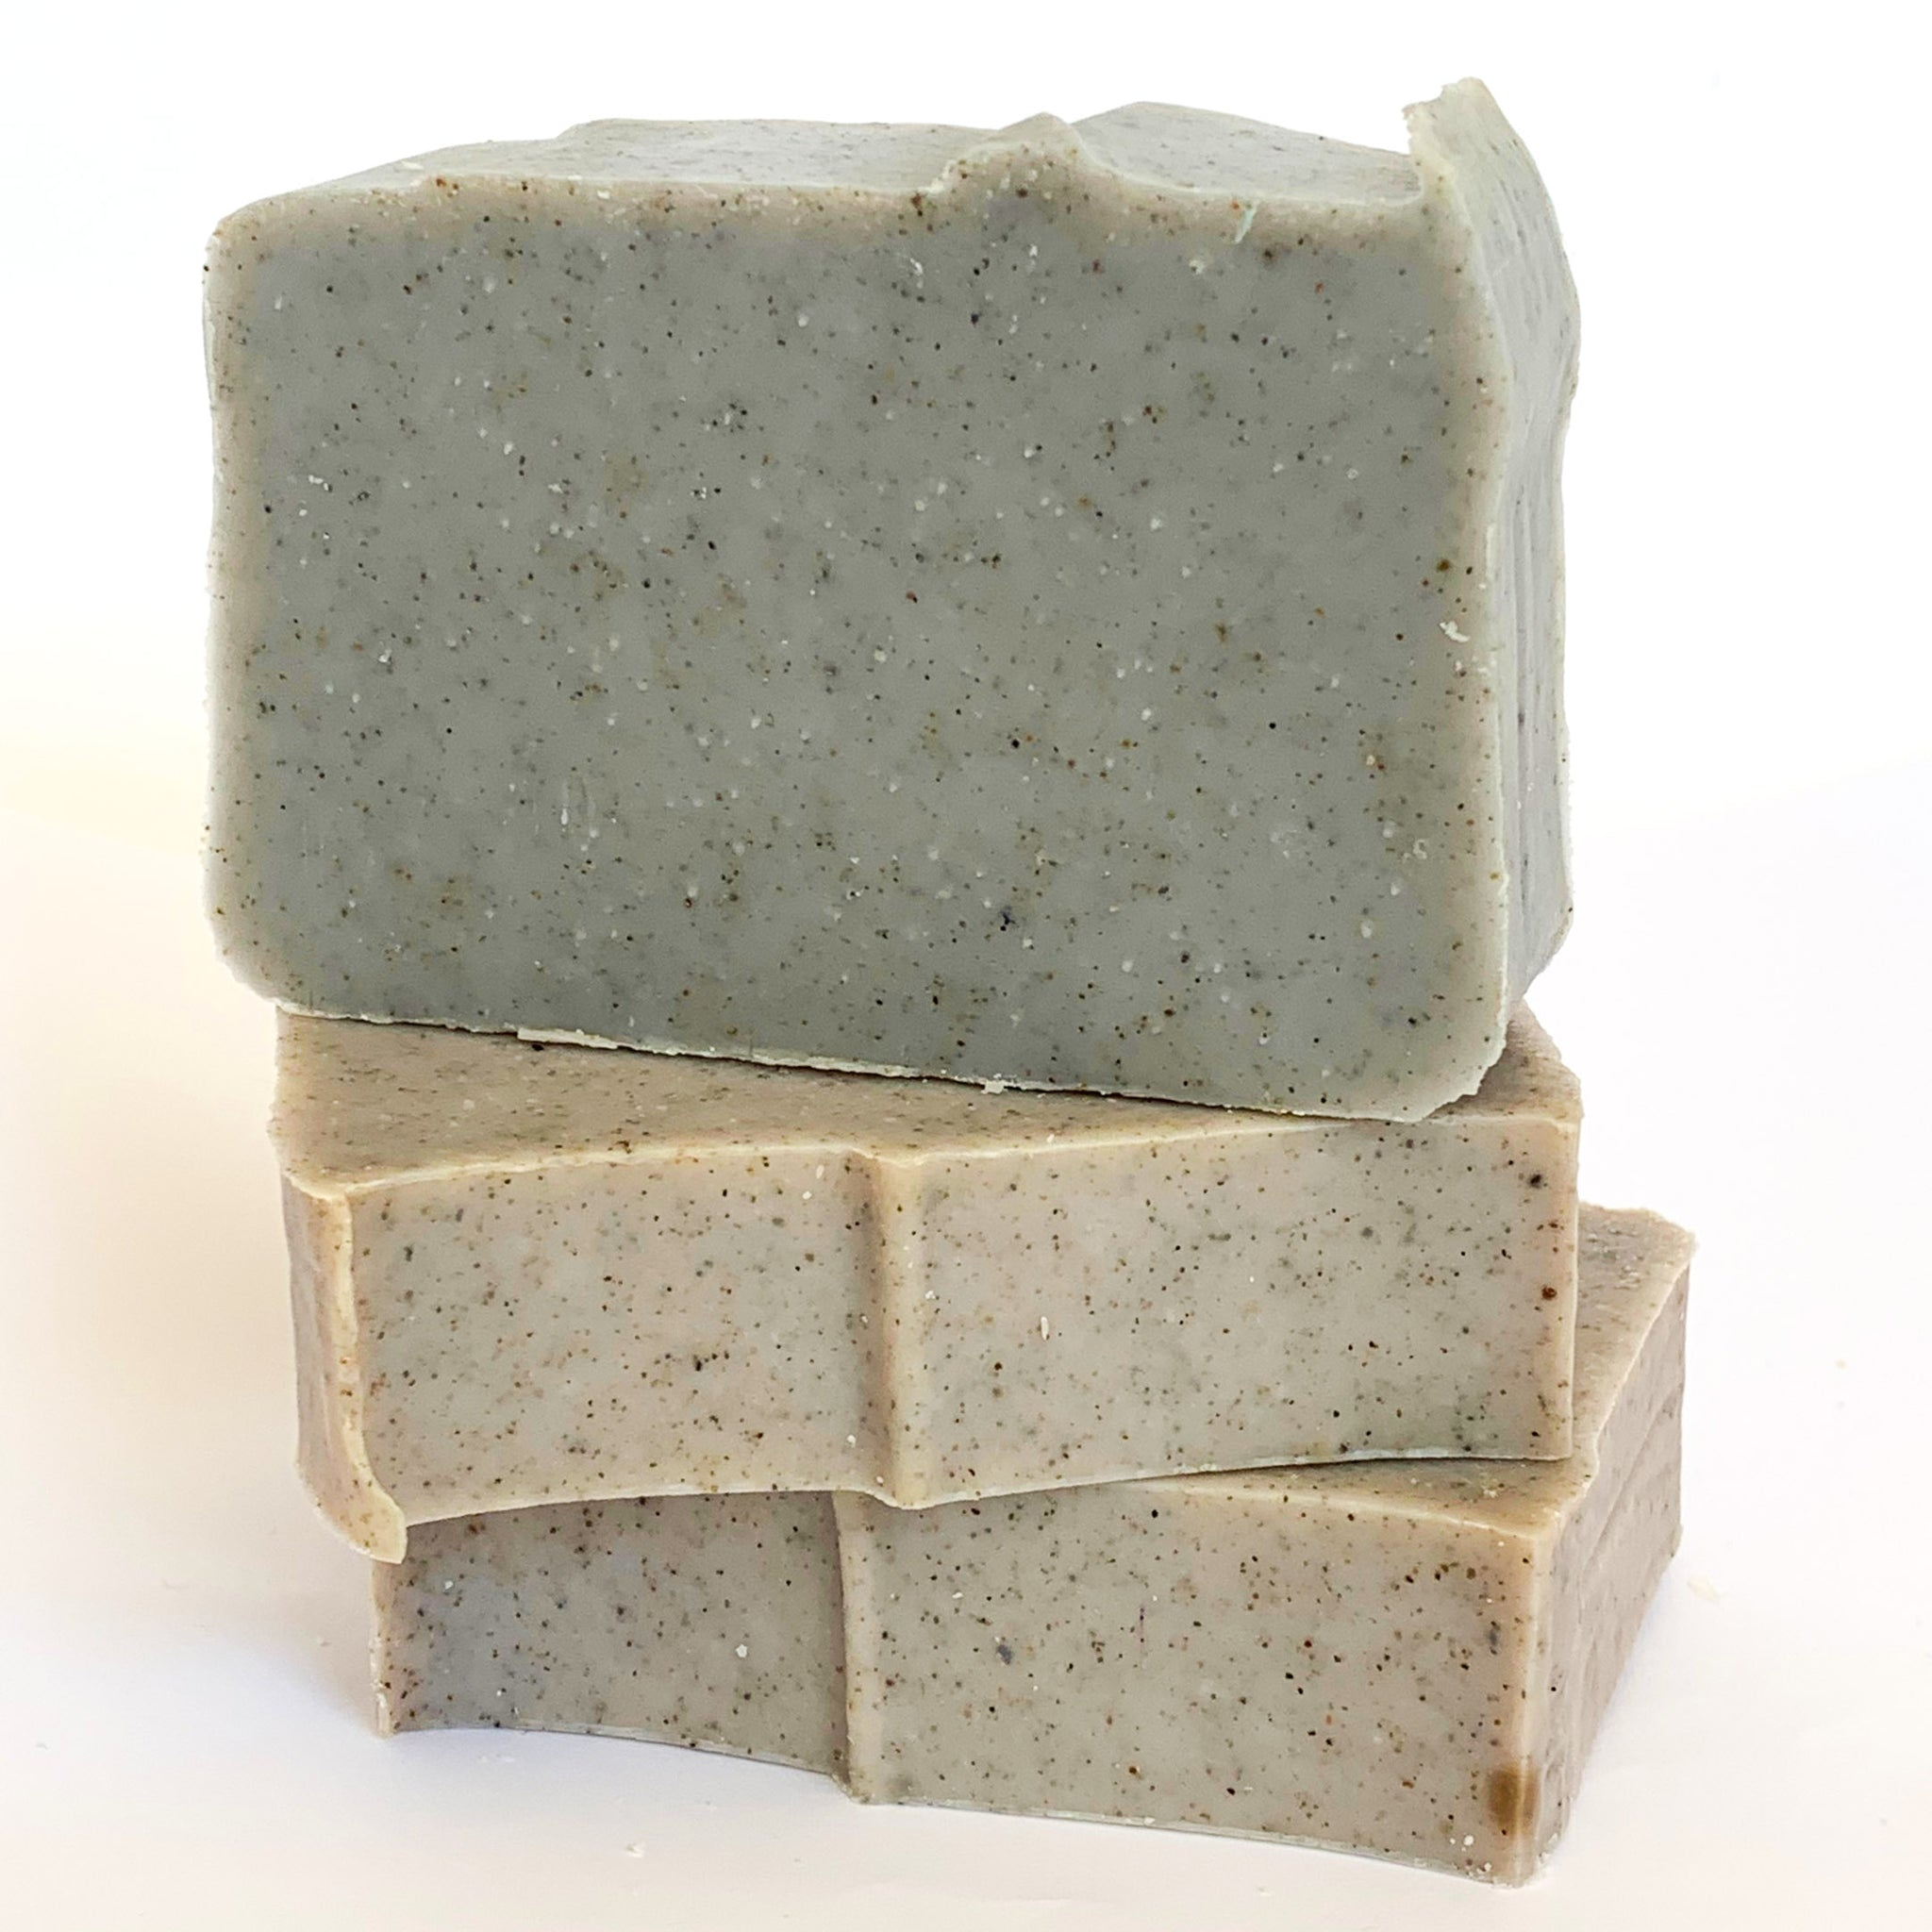 Blueberry with Sand Olive Oil Soap with Beeswax